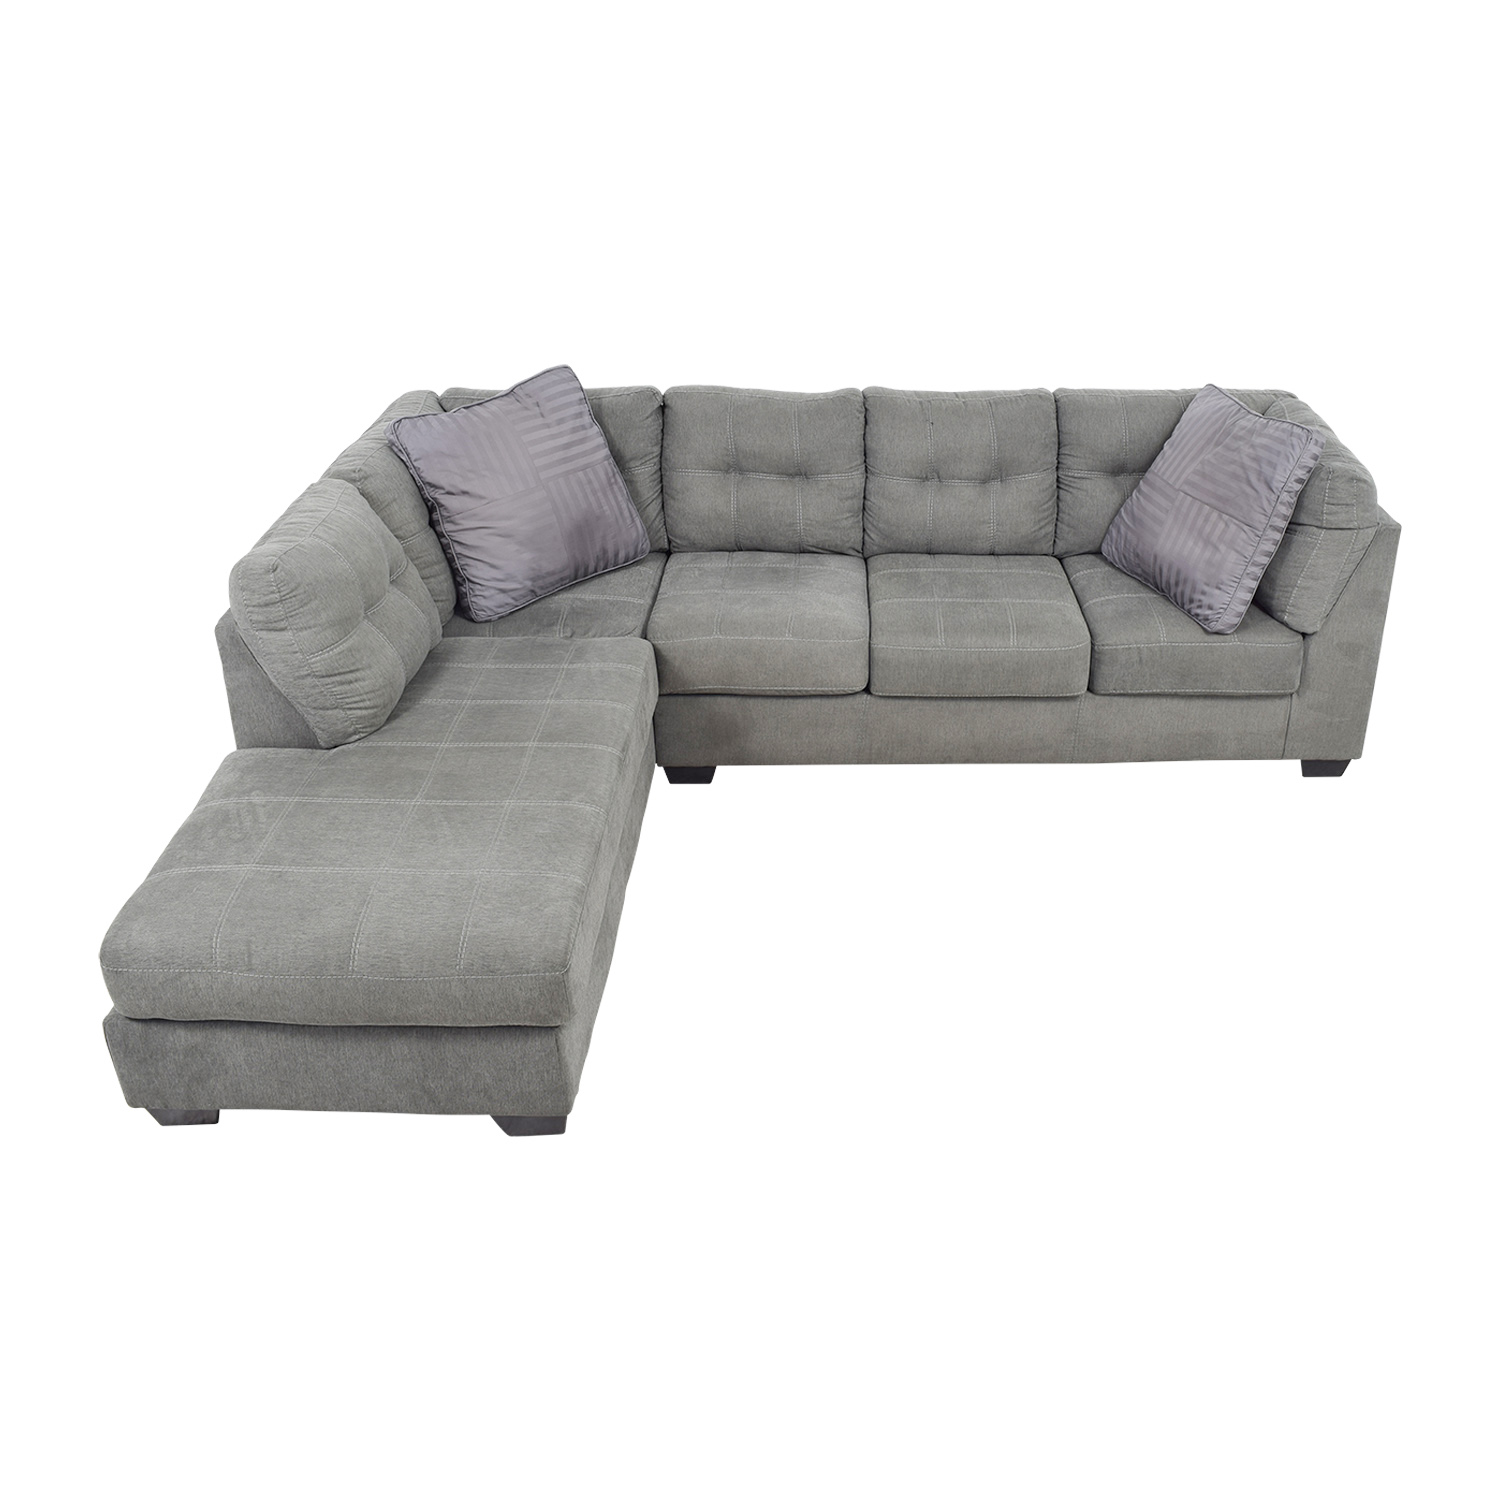 Astonishing 54 Off Jennifer Furniture Jennifer Convertibles Arthur Grey Left Arm Chaise Sectional Sofas Gmtry Best Dining Table And Chair Ideas Images Gmtryco